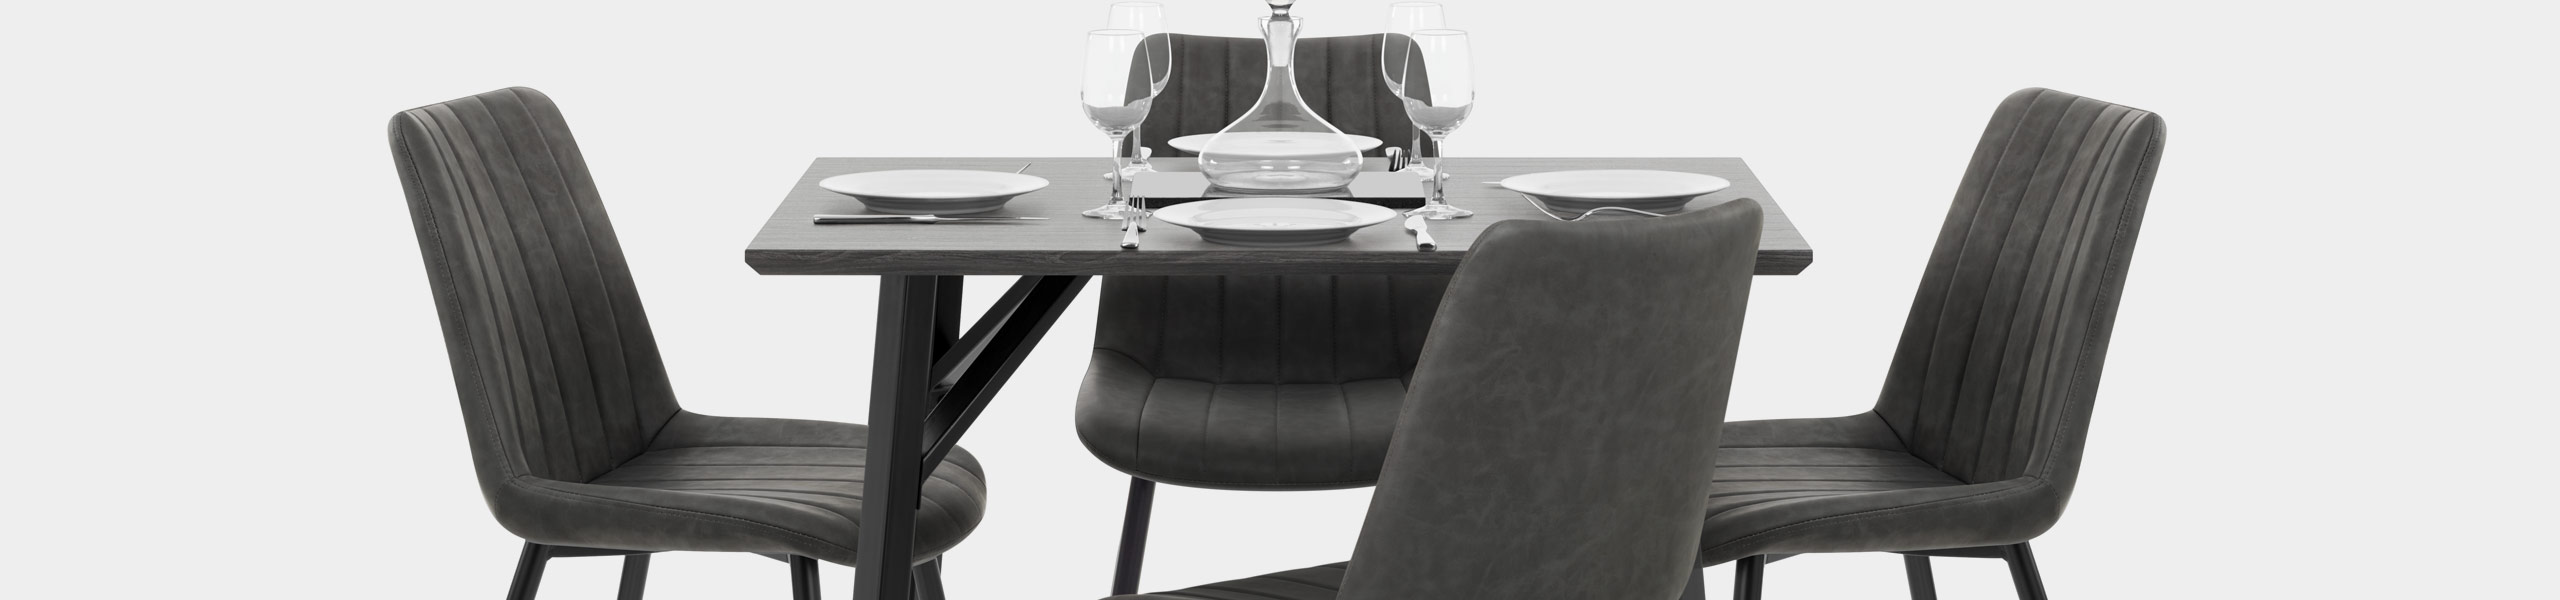 Warwick Dining Set Grey Wood & Charcoal Video Banner